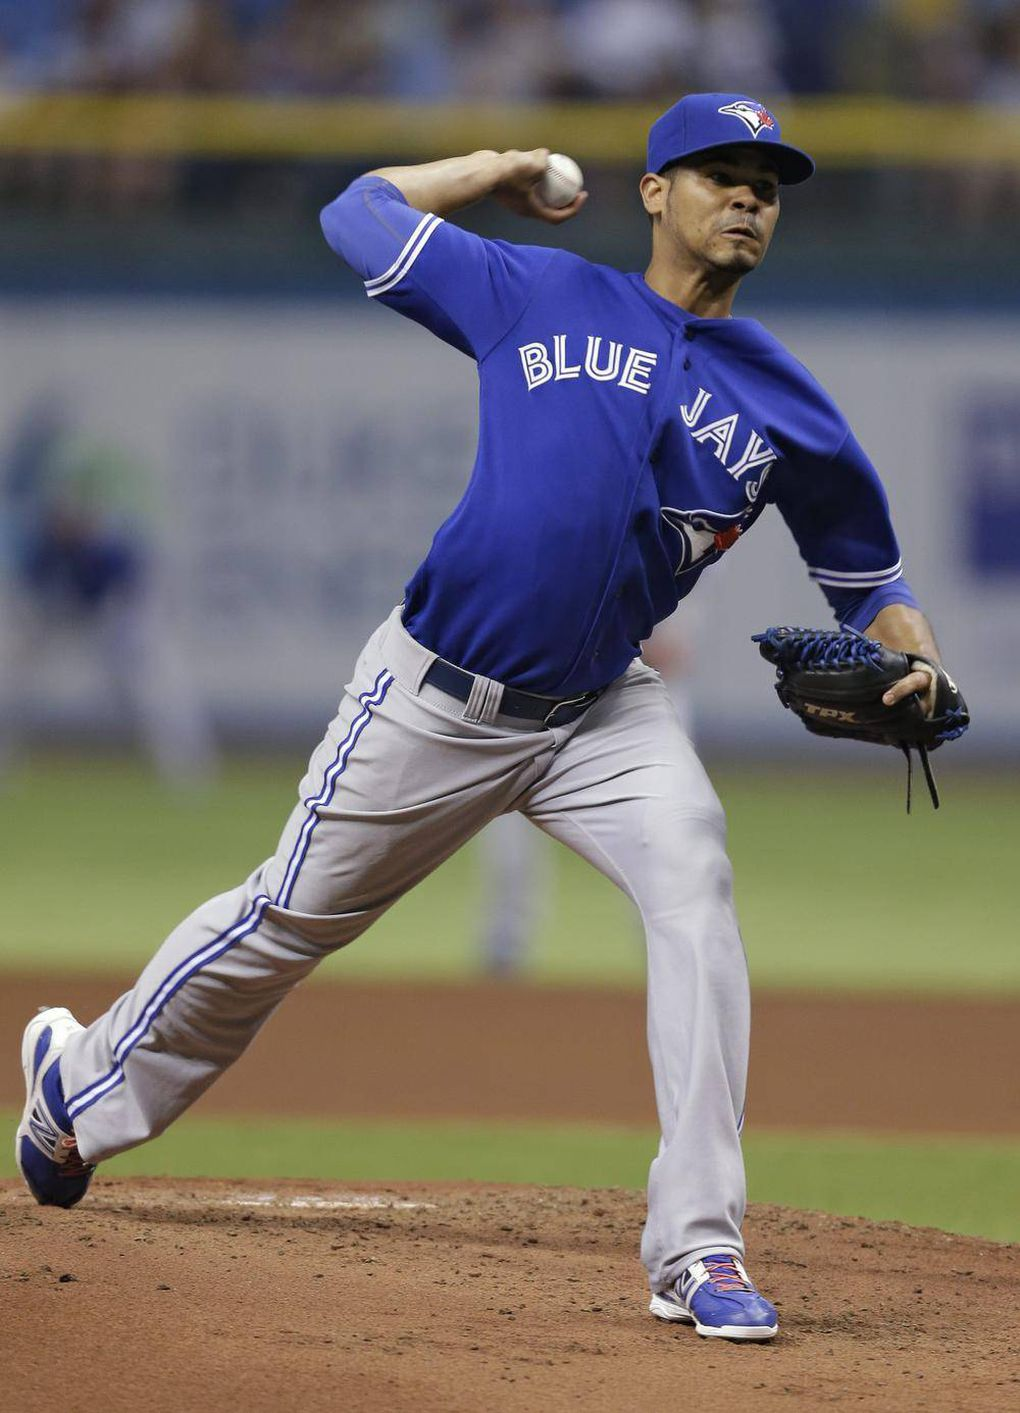 Back to reality for Blue Jays